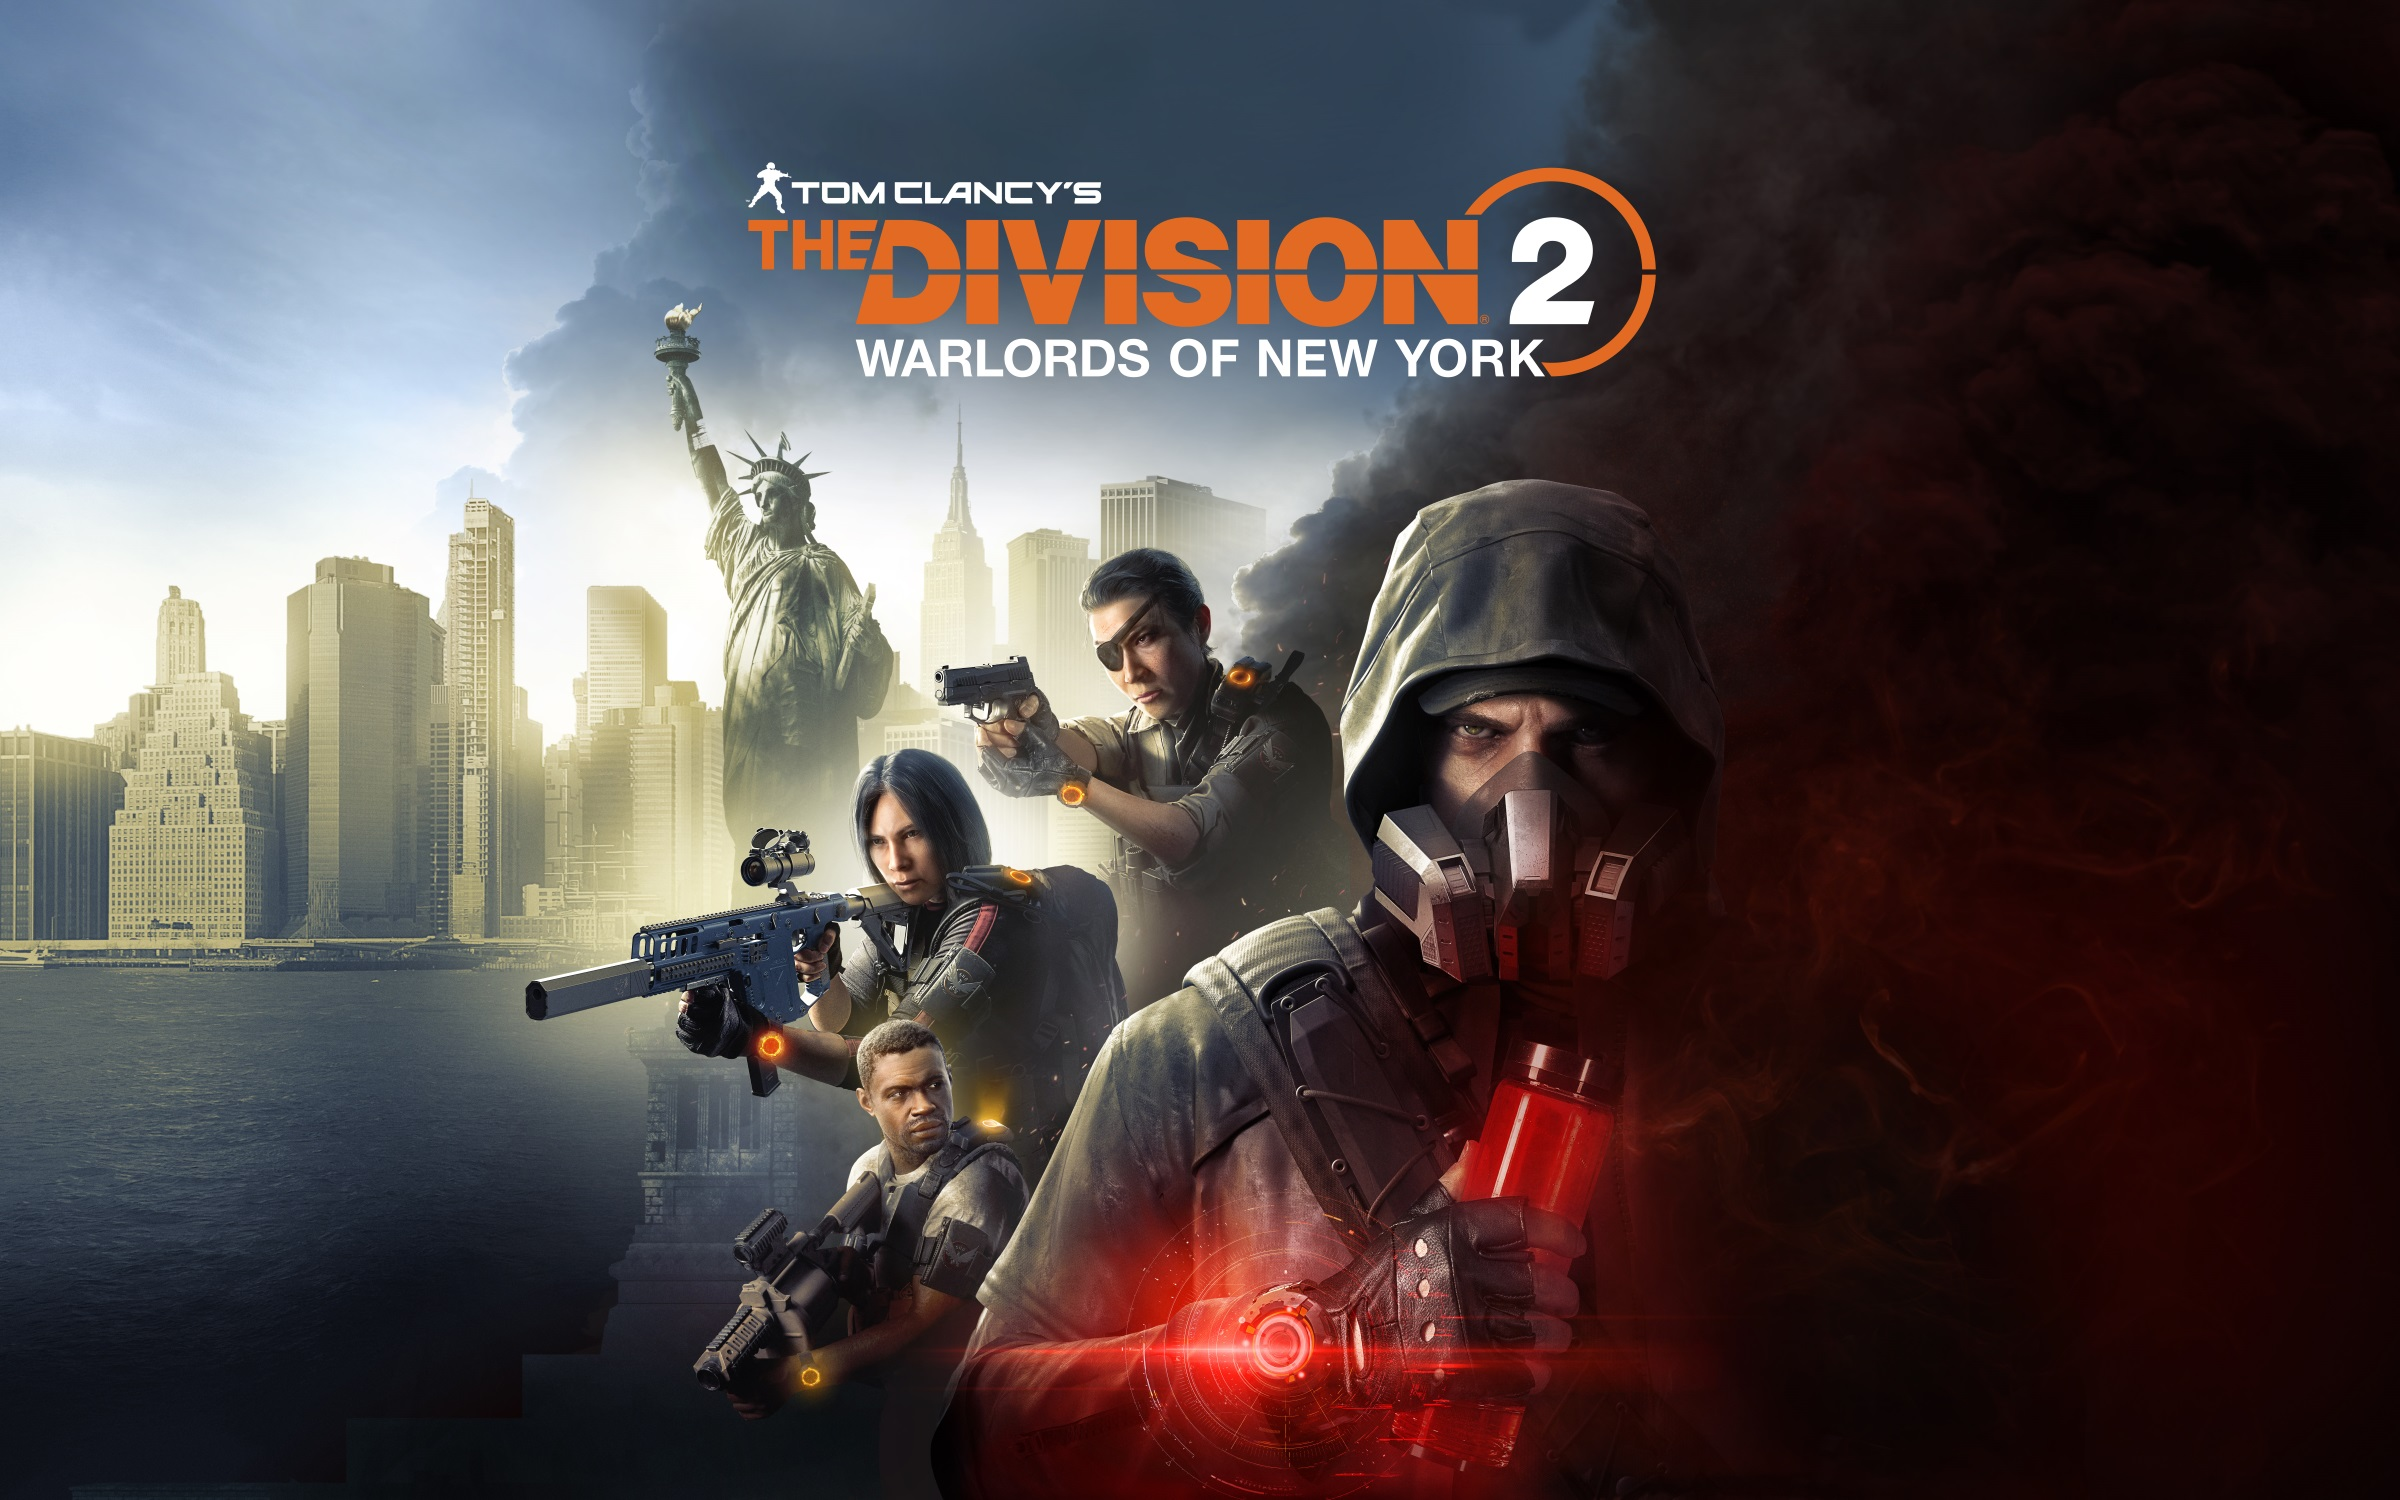 The Division 2 Warlords of New York Info Drop